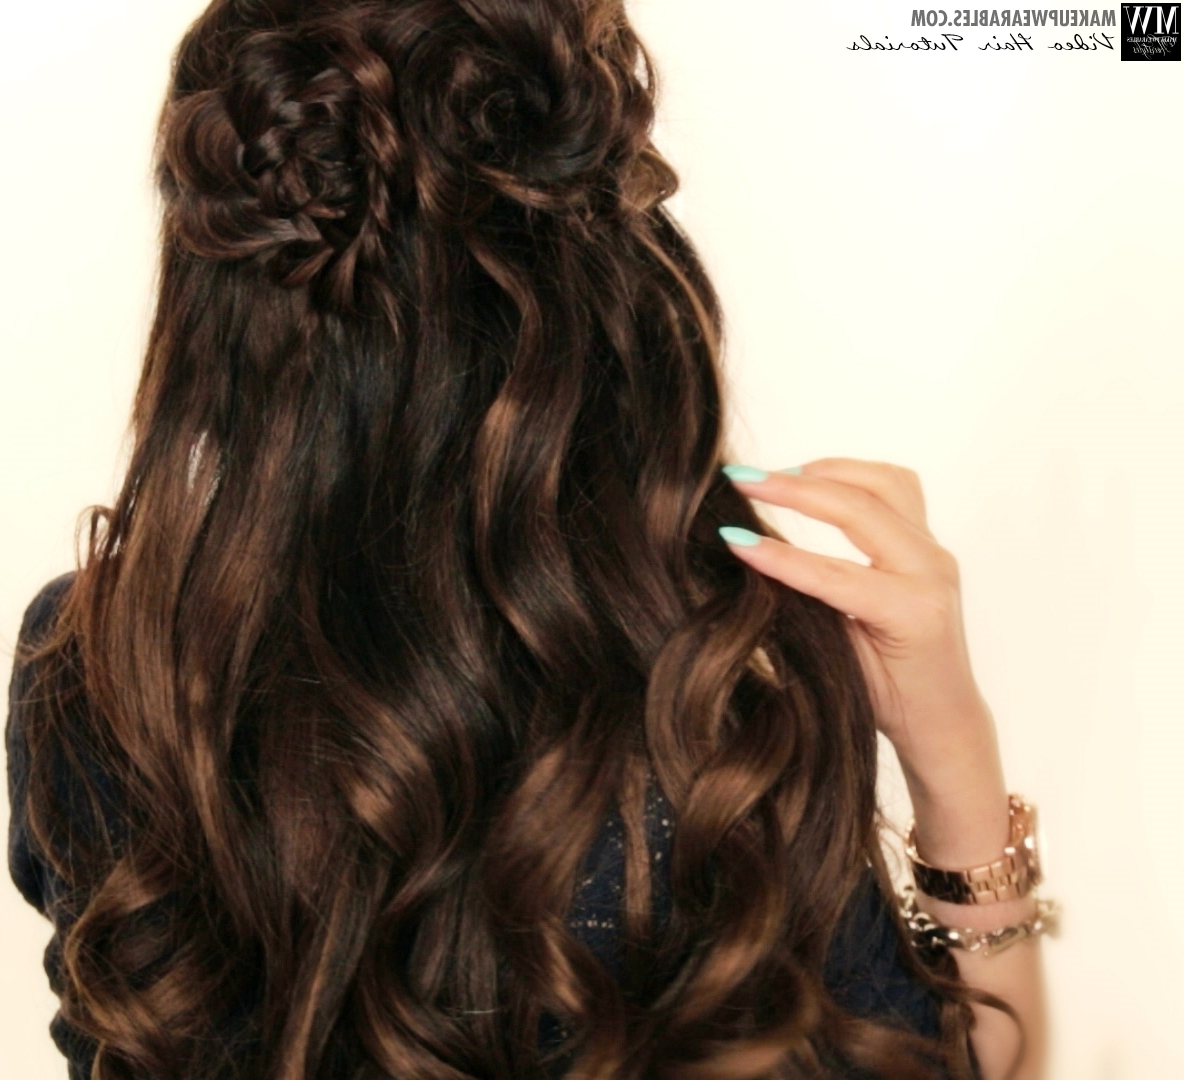 Tutorial Video For Fashionable Half Up, Half Down Braid Hairstyles (View 17 of 20)